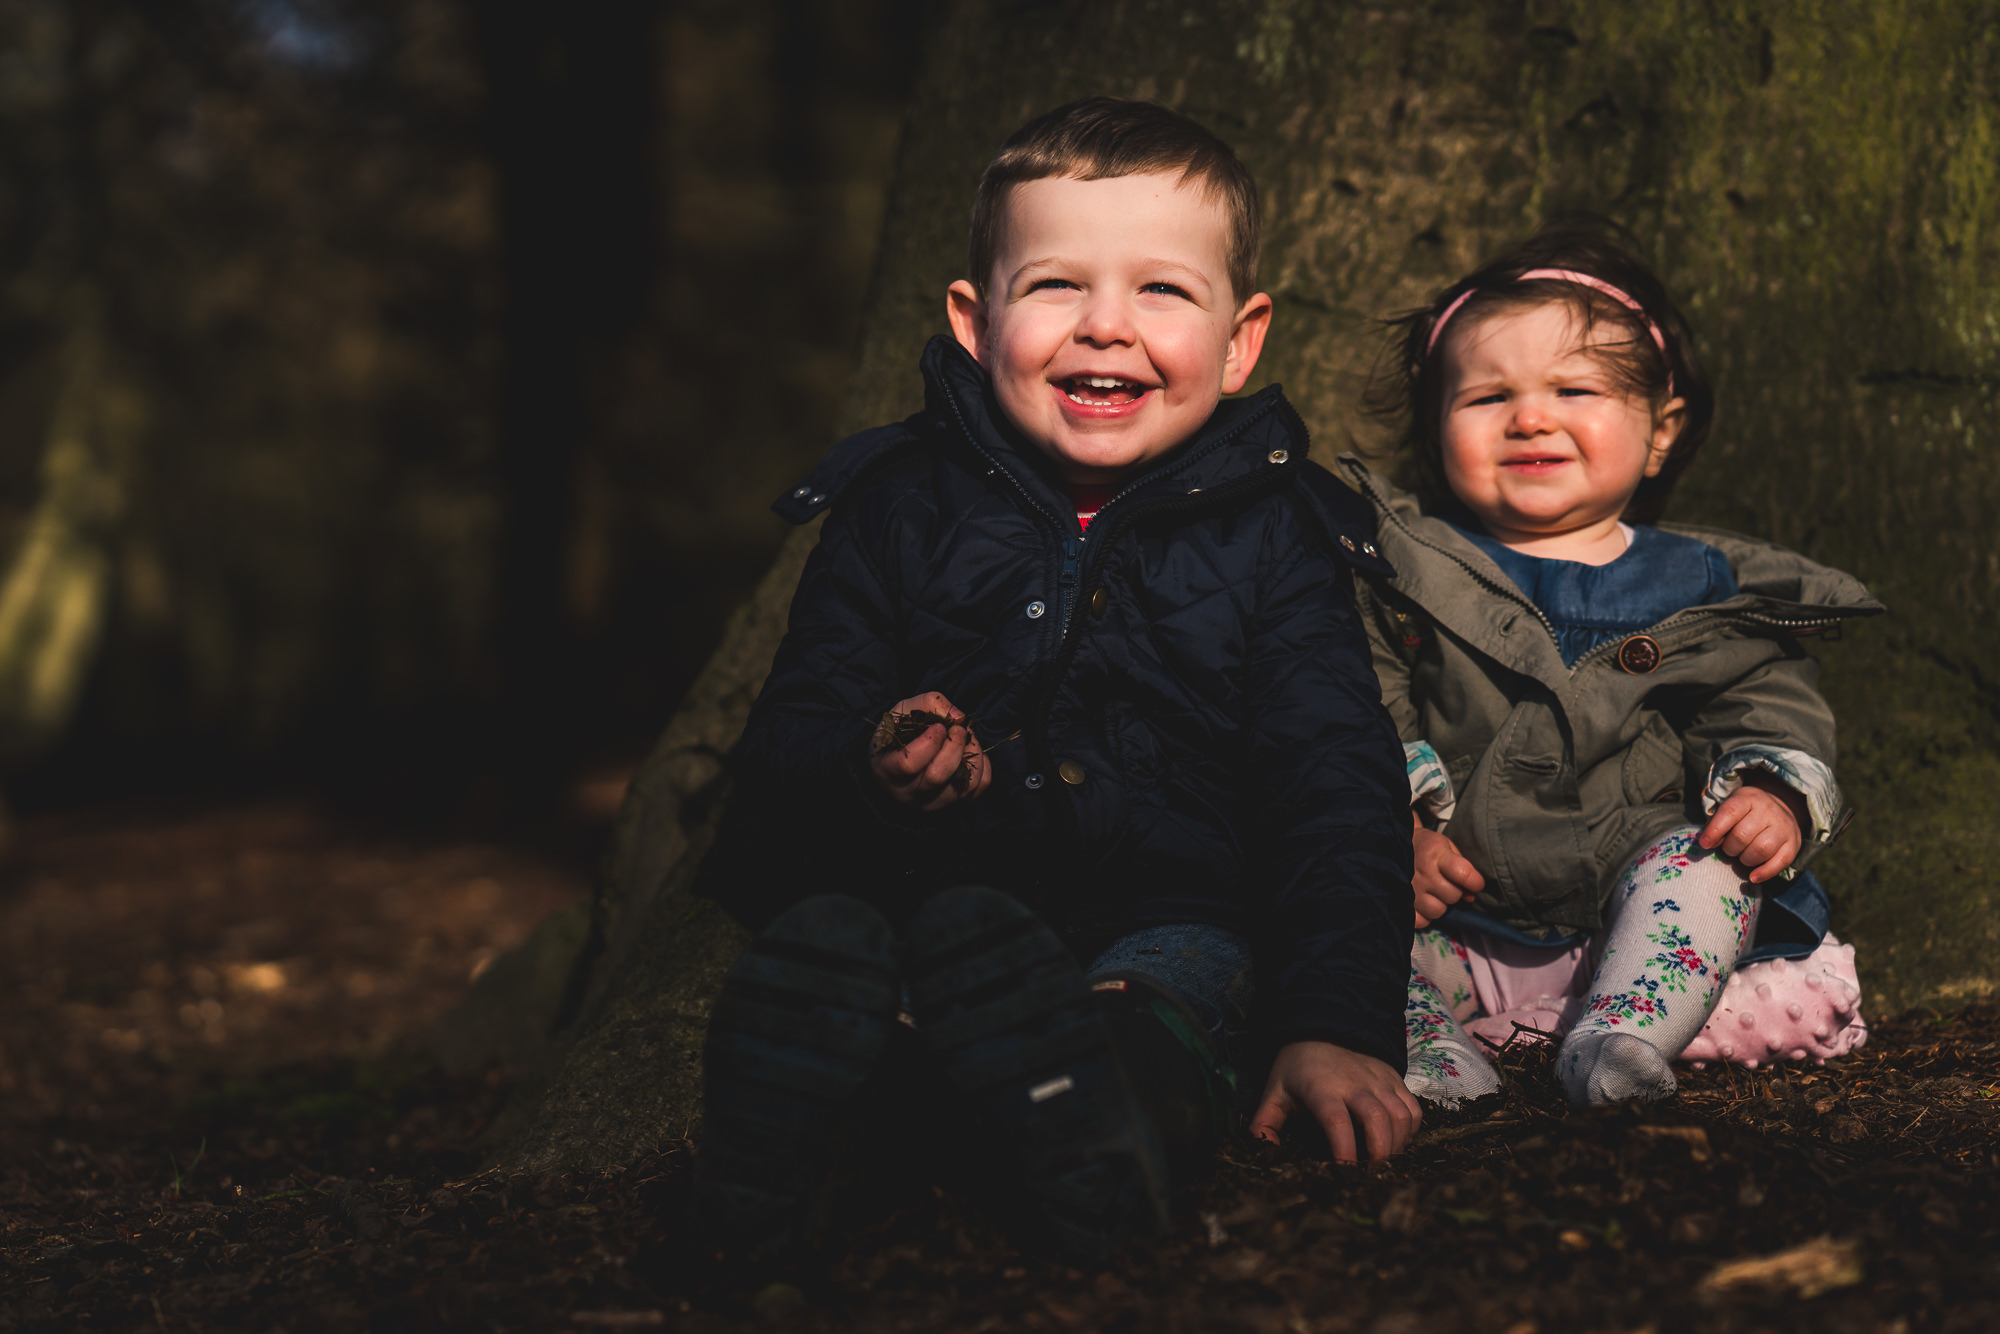 chicksands wood campton plantation bedfordshire family shoot-1023.jpg